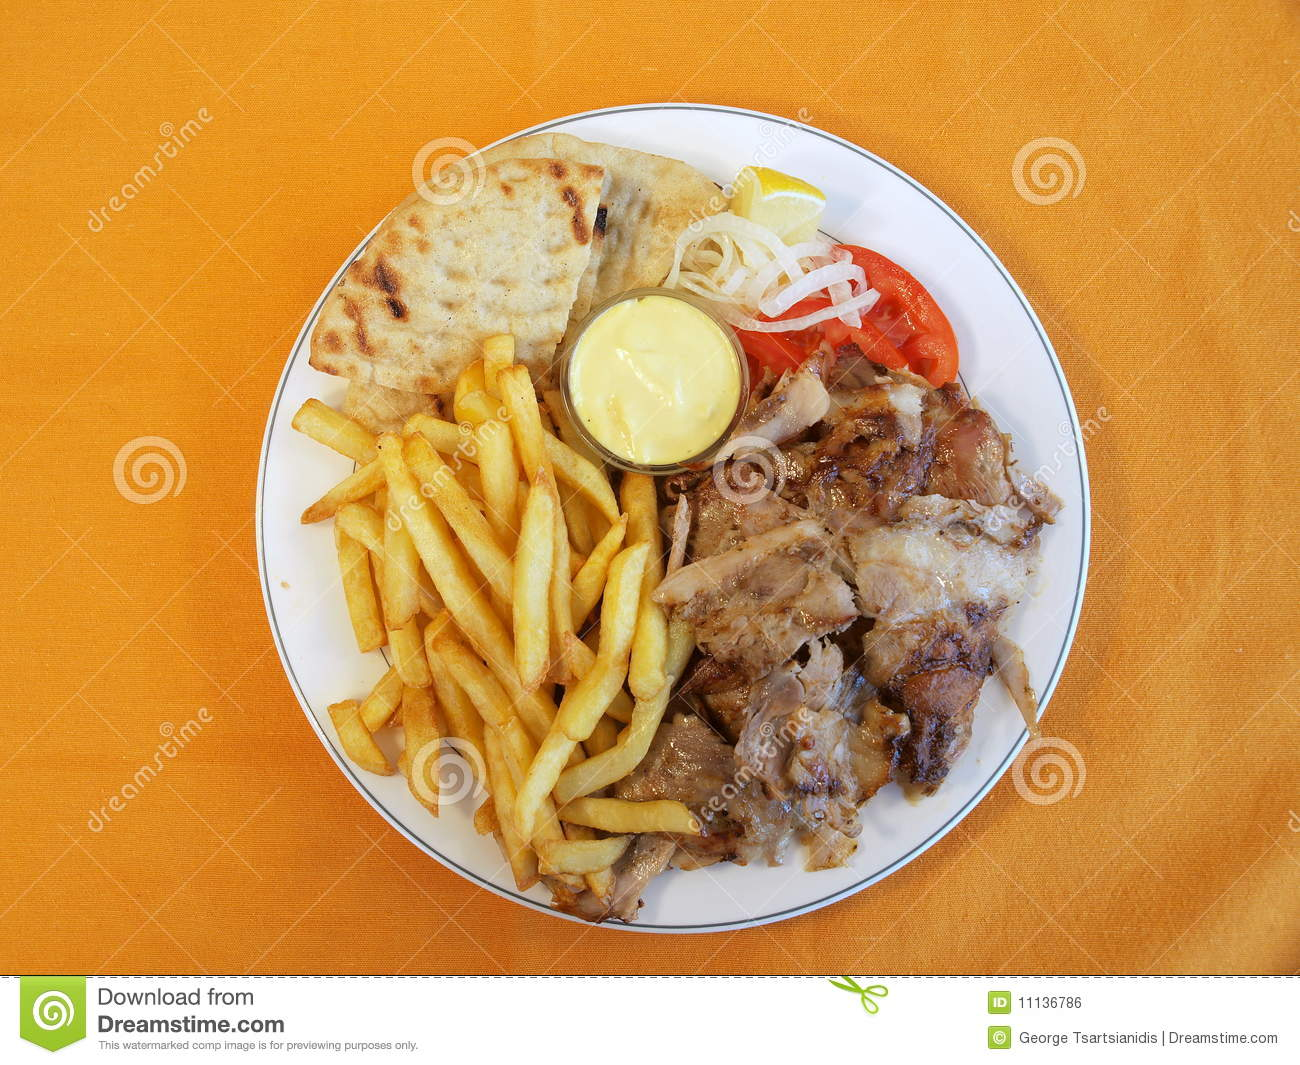 Looking Down On Plate Of Traditional Greek Gyros With French Fries On